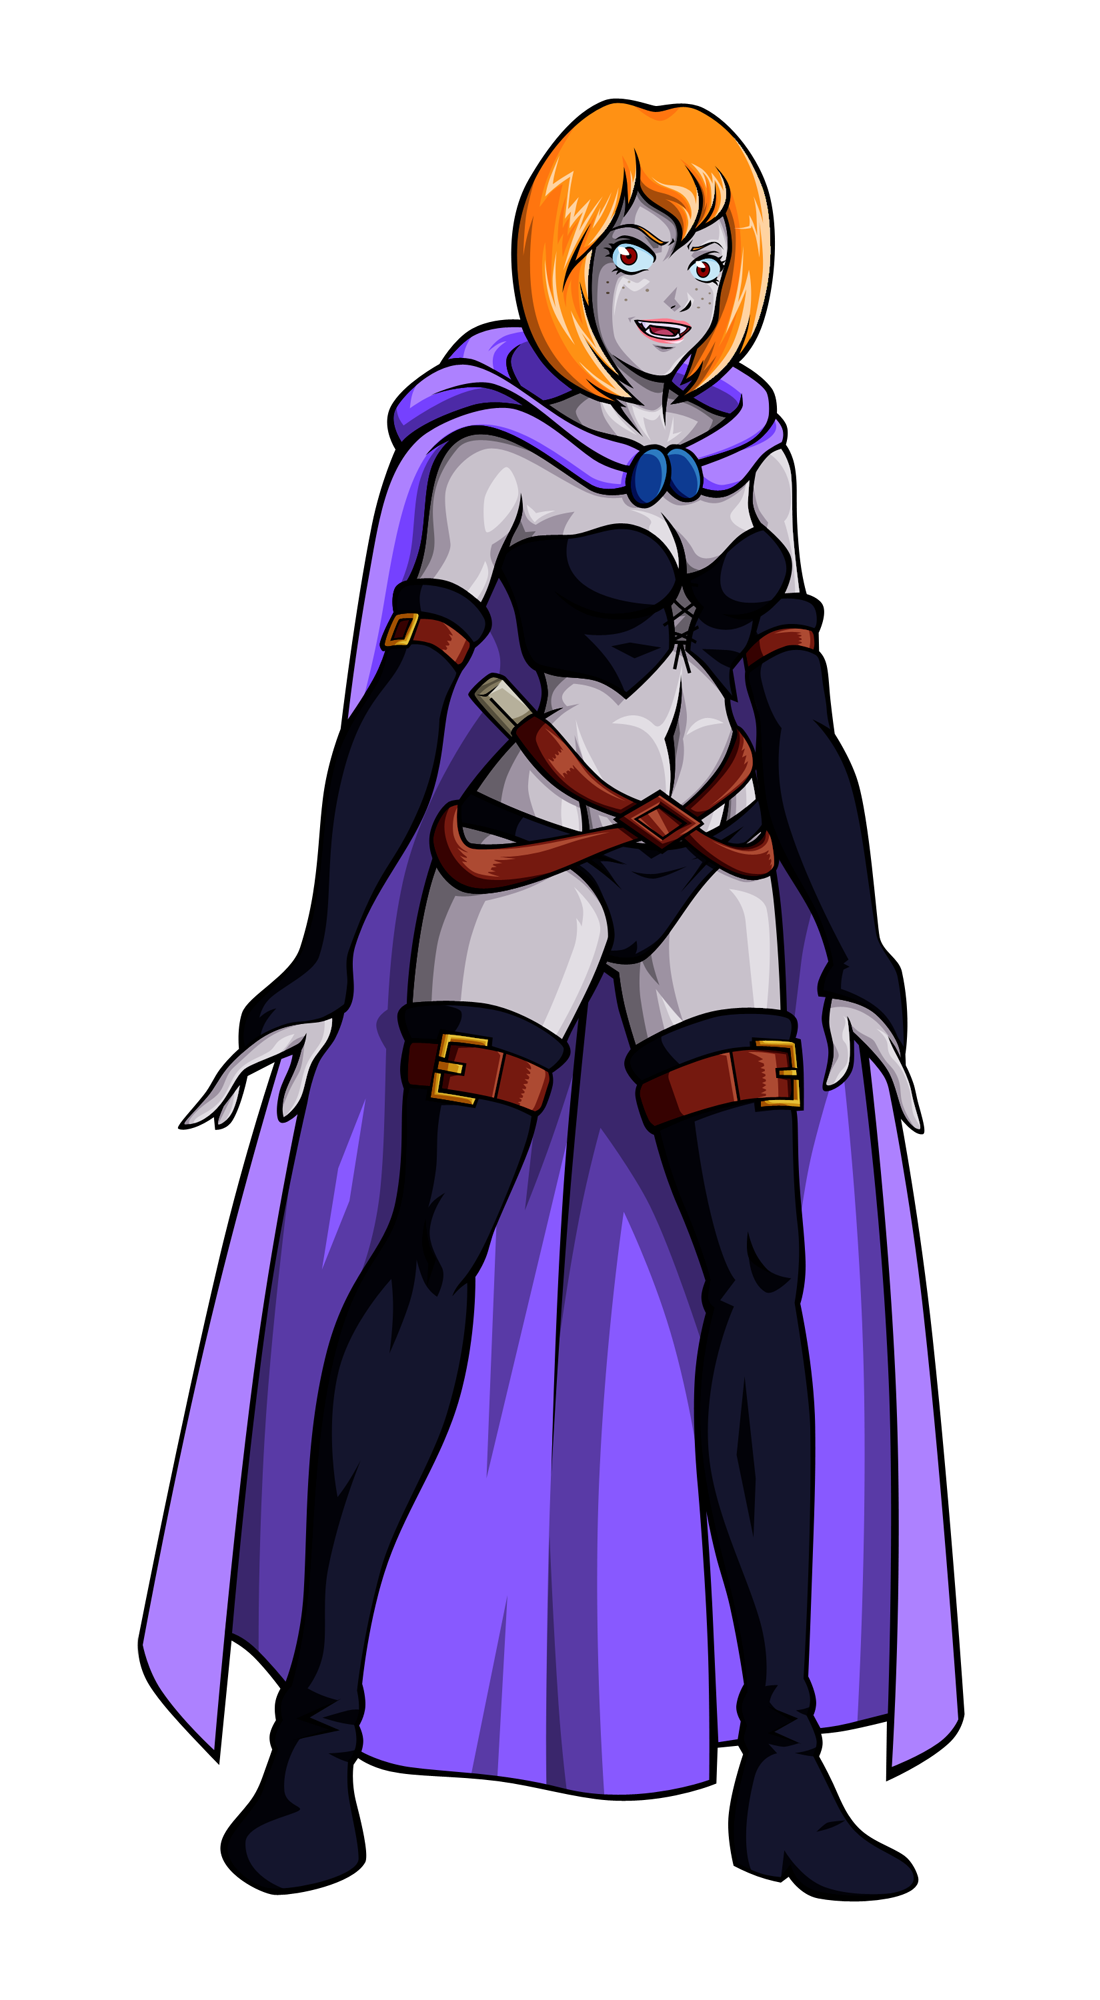 New Vampire Sheila Design - Dungeons & Dragons by Zentron